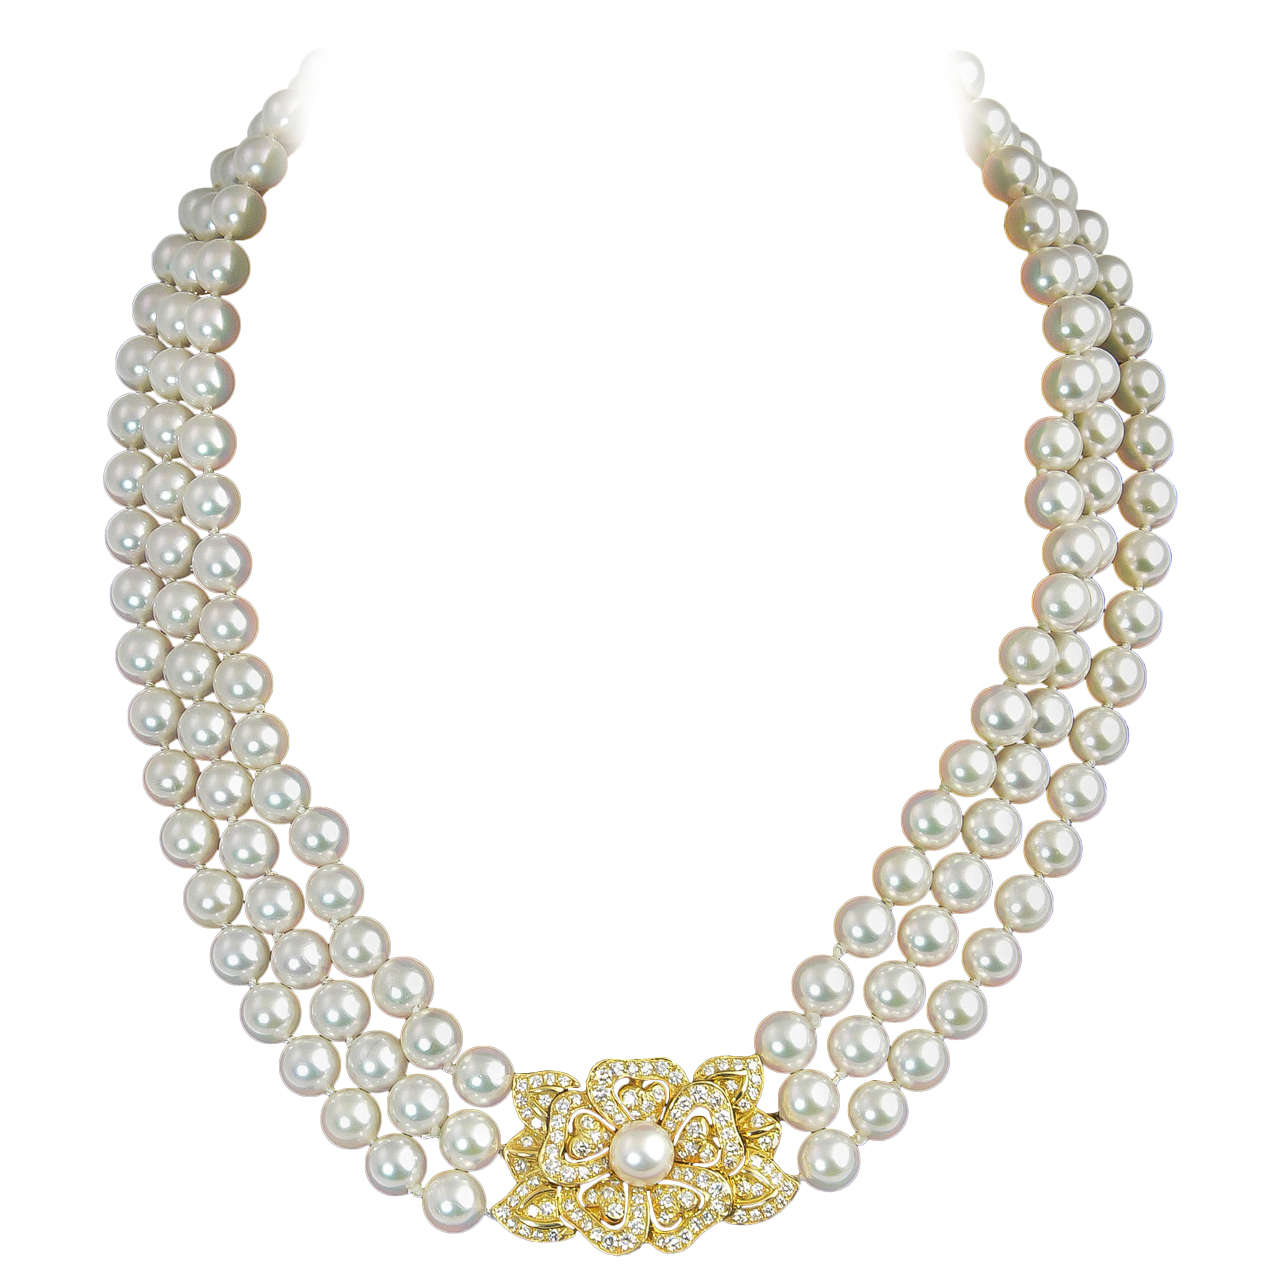 c11fca8d2d18 Mikimoto Triple Strand Pearl Necklace with Diamond Flower at 1stdibs